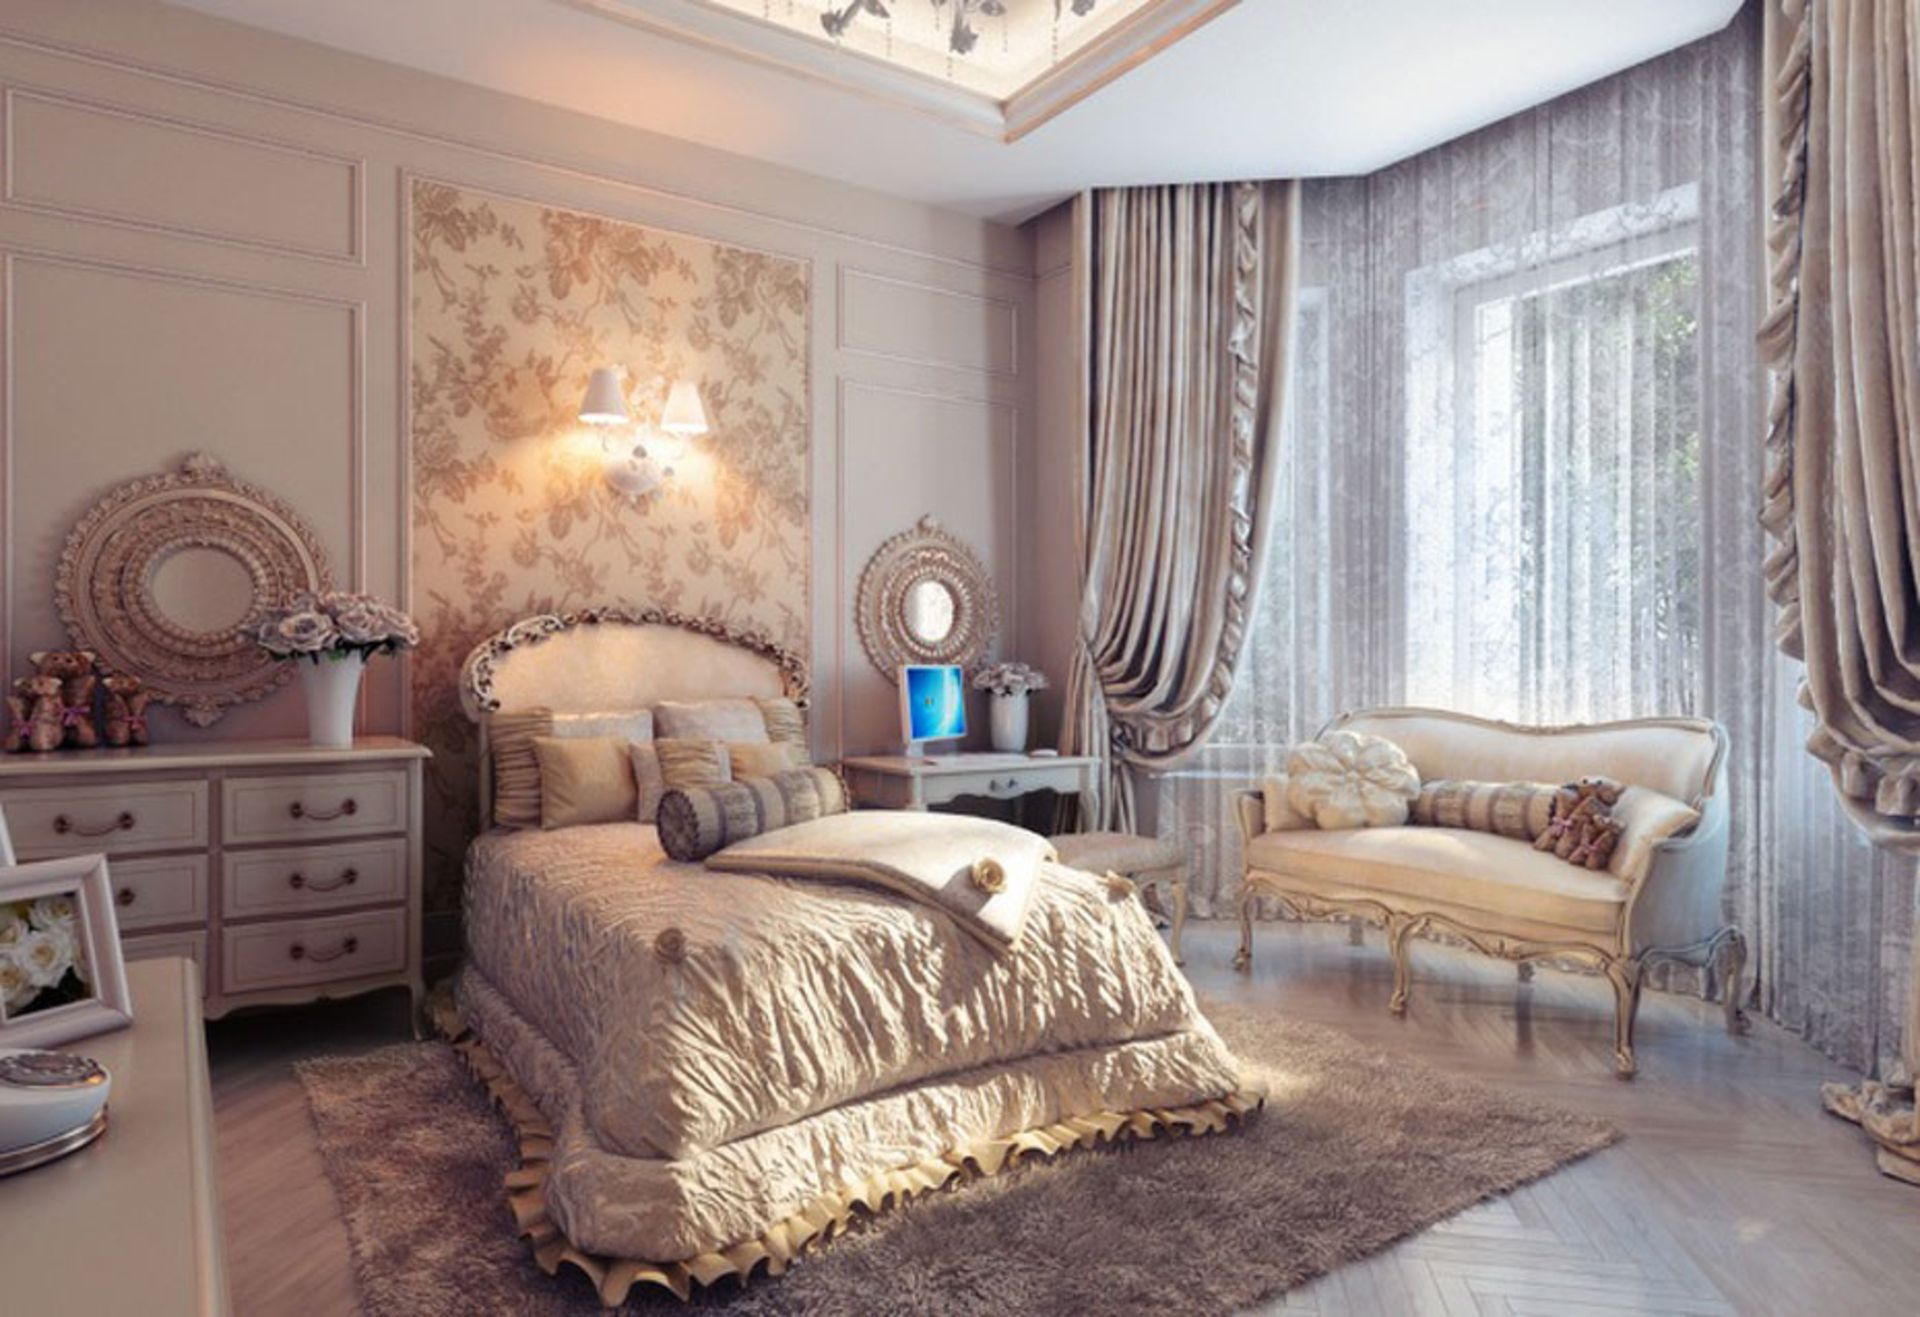 Bedroom Designs, Traditional Cream Bedroom 2013 Charming Sofa Bed Cover Fur  Rug Fabric Laminate Flooring: Amazing Bedrooms With Traditional Elegance